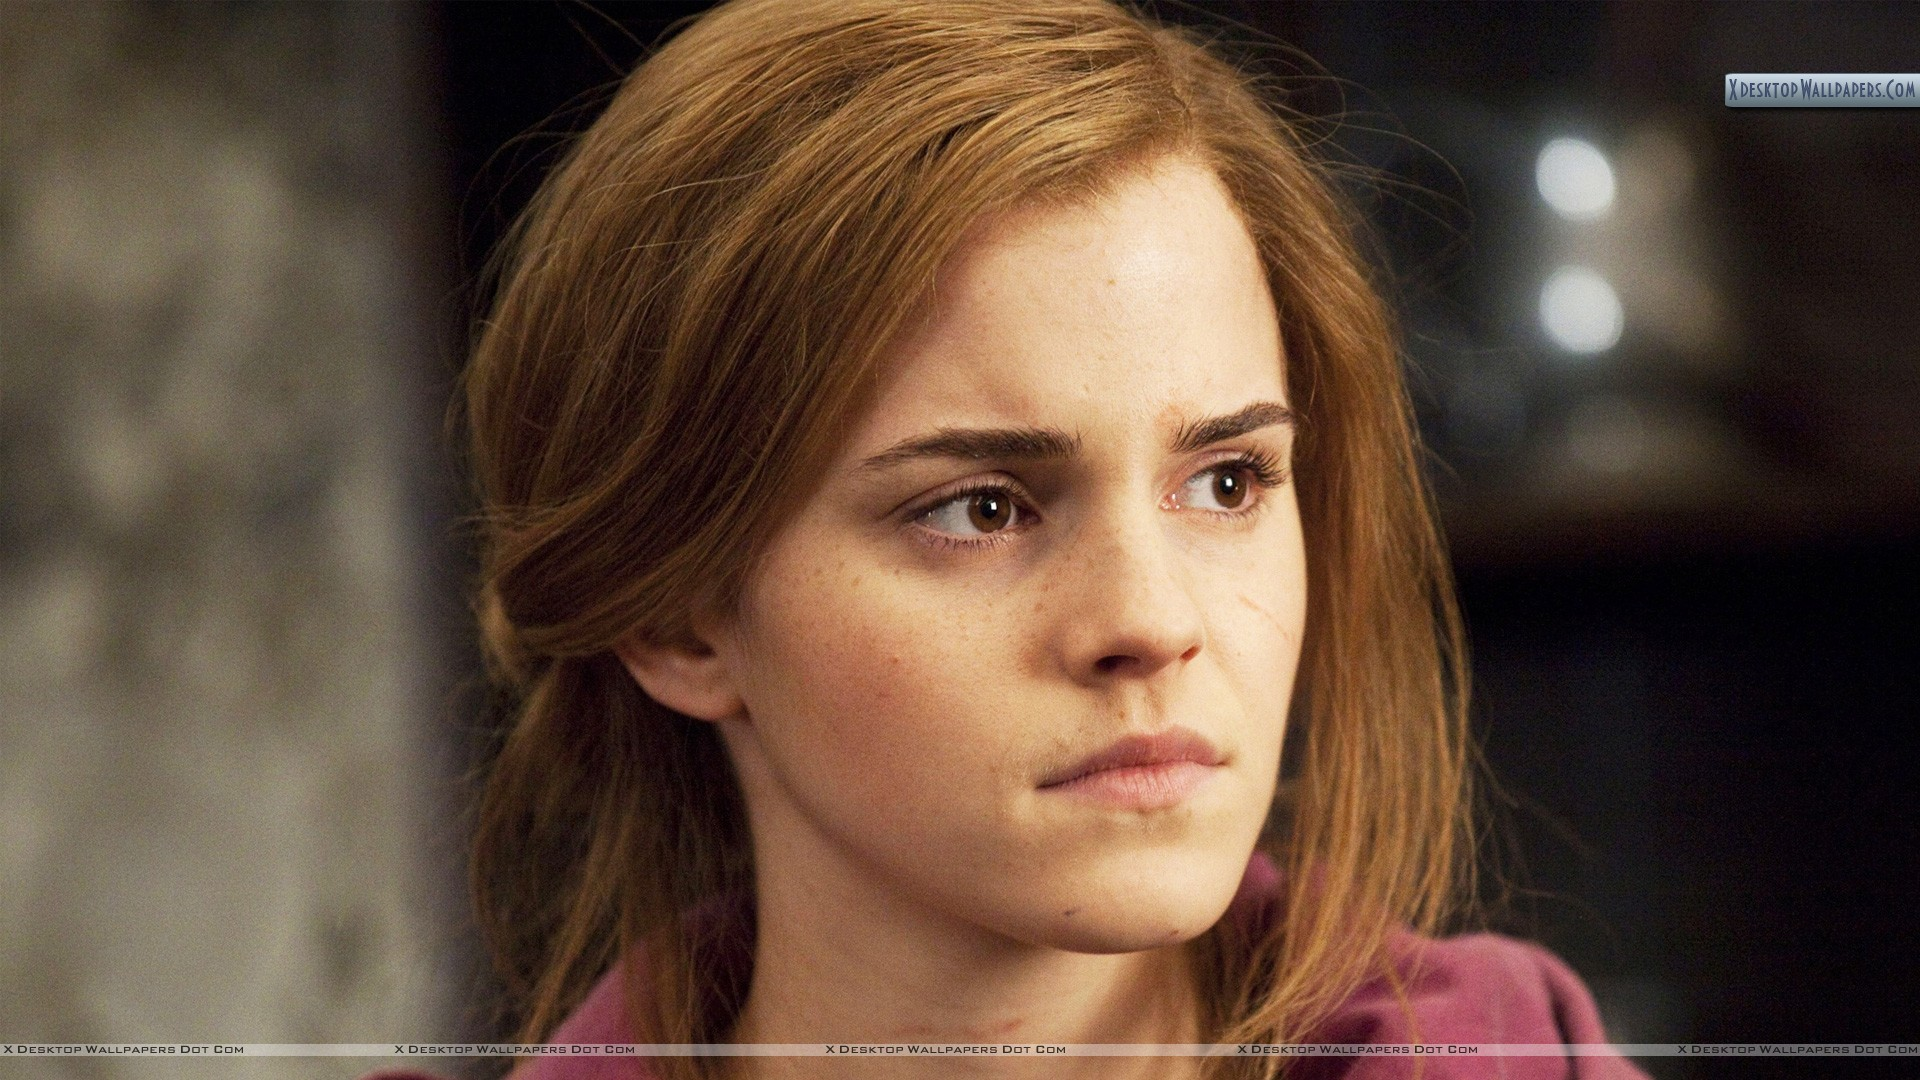 emma watson wallpapers, photos & images in hd